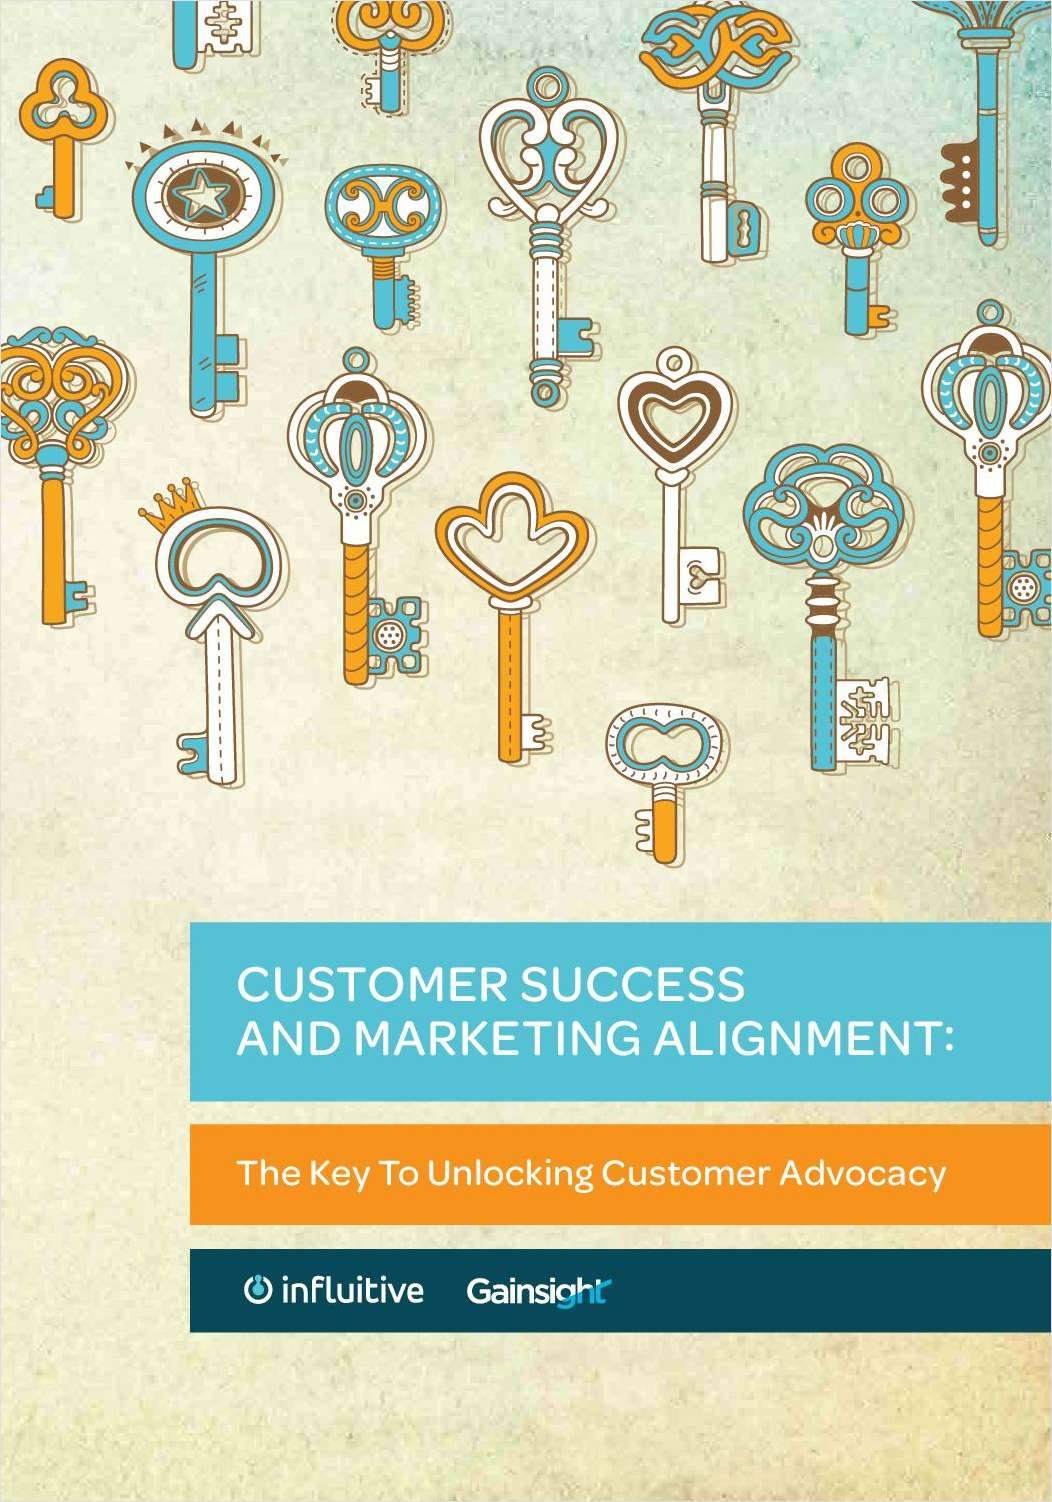 Customer Success and Marketing Alignment: The Key to Unlocking Customer Advocacy